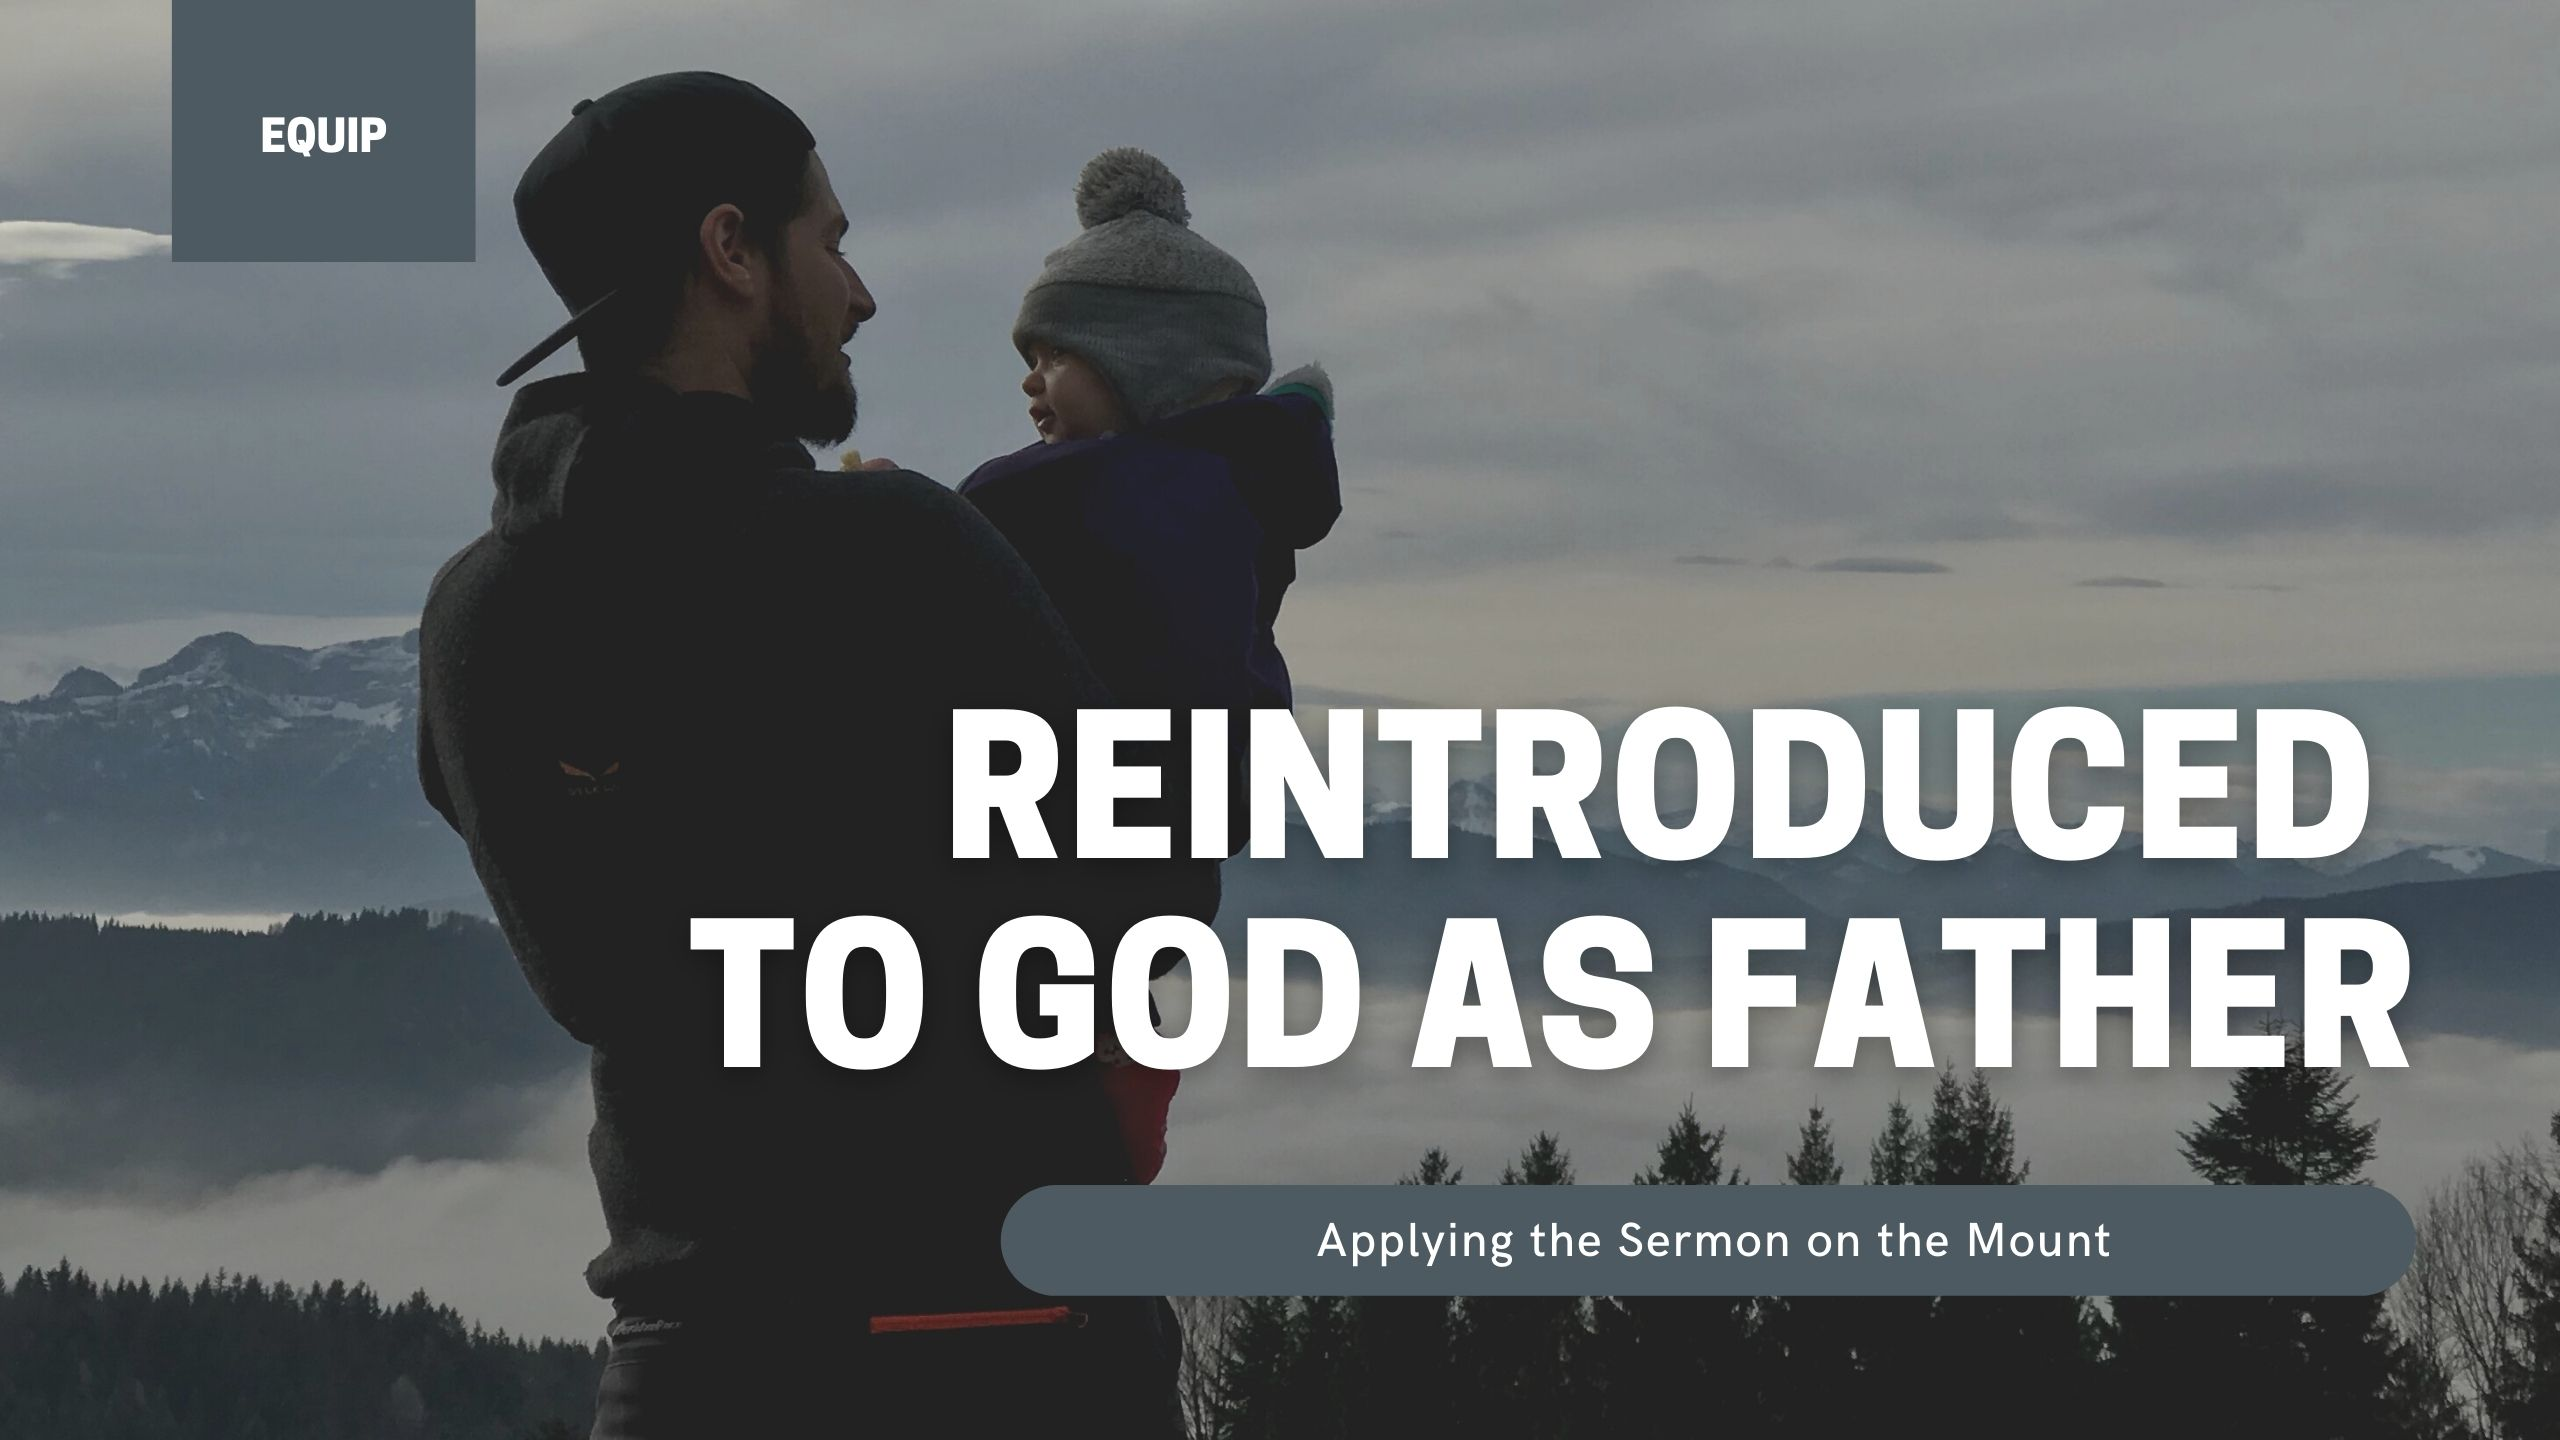 Reintroduced to God as Father